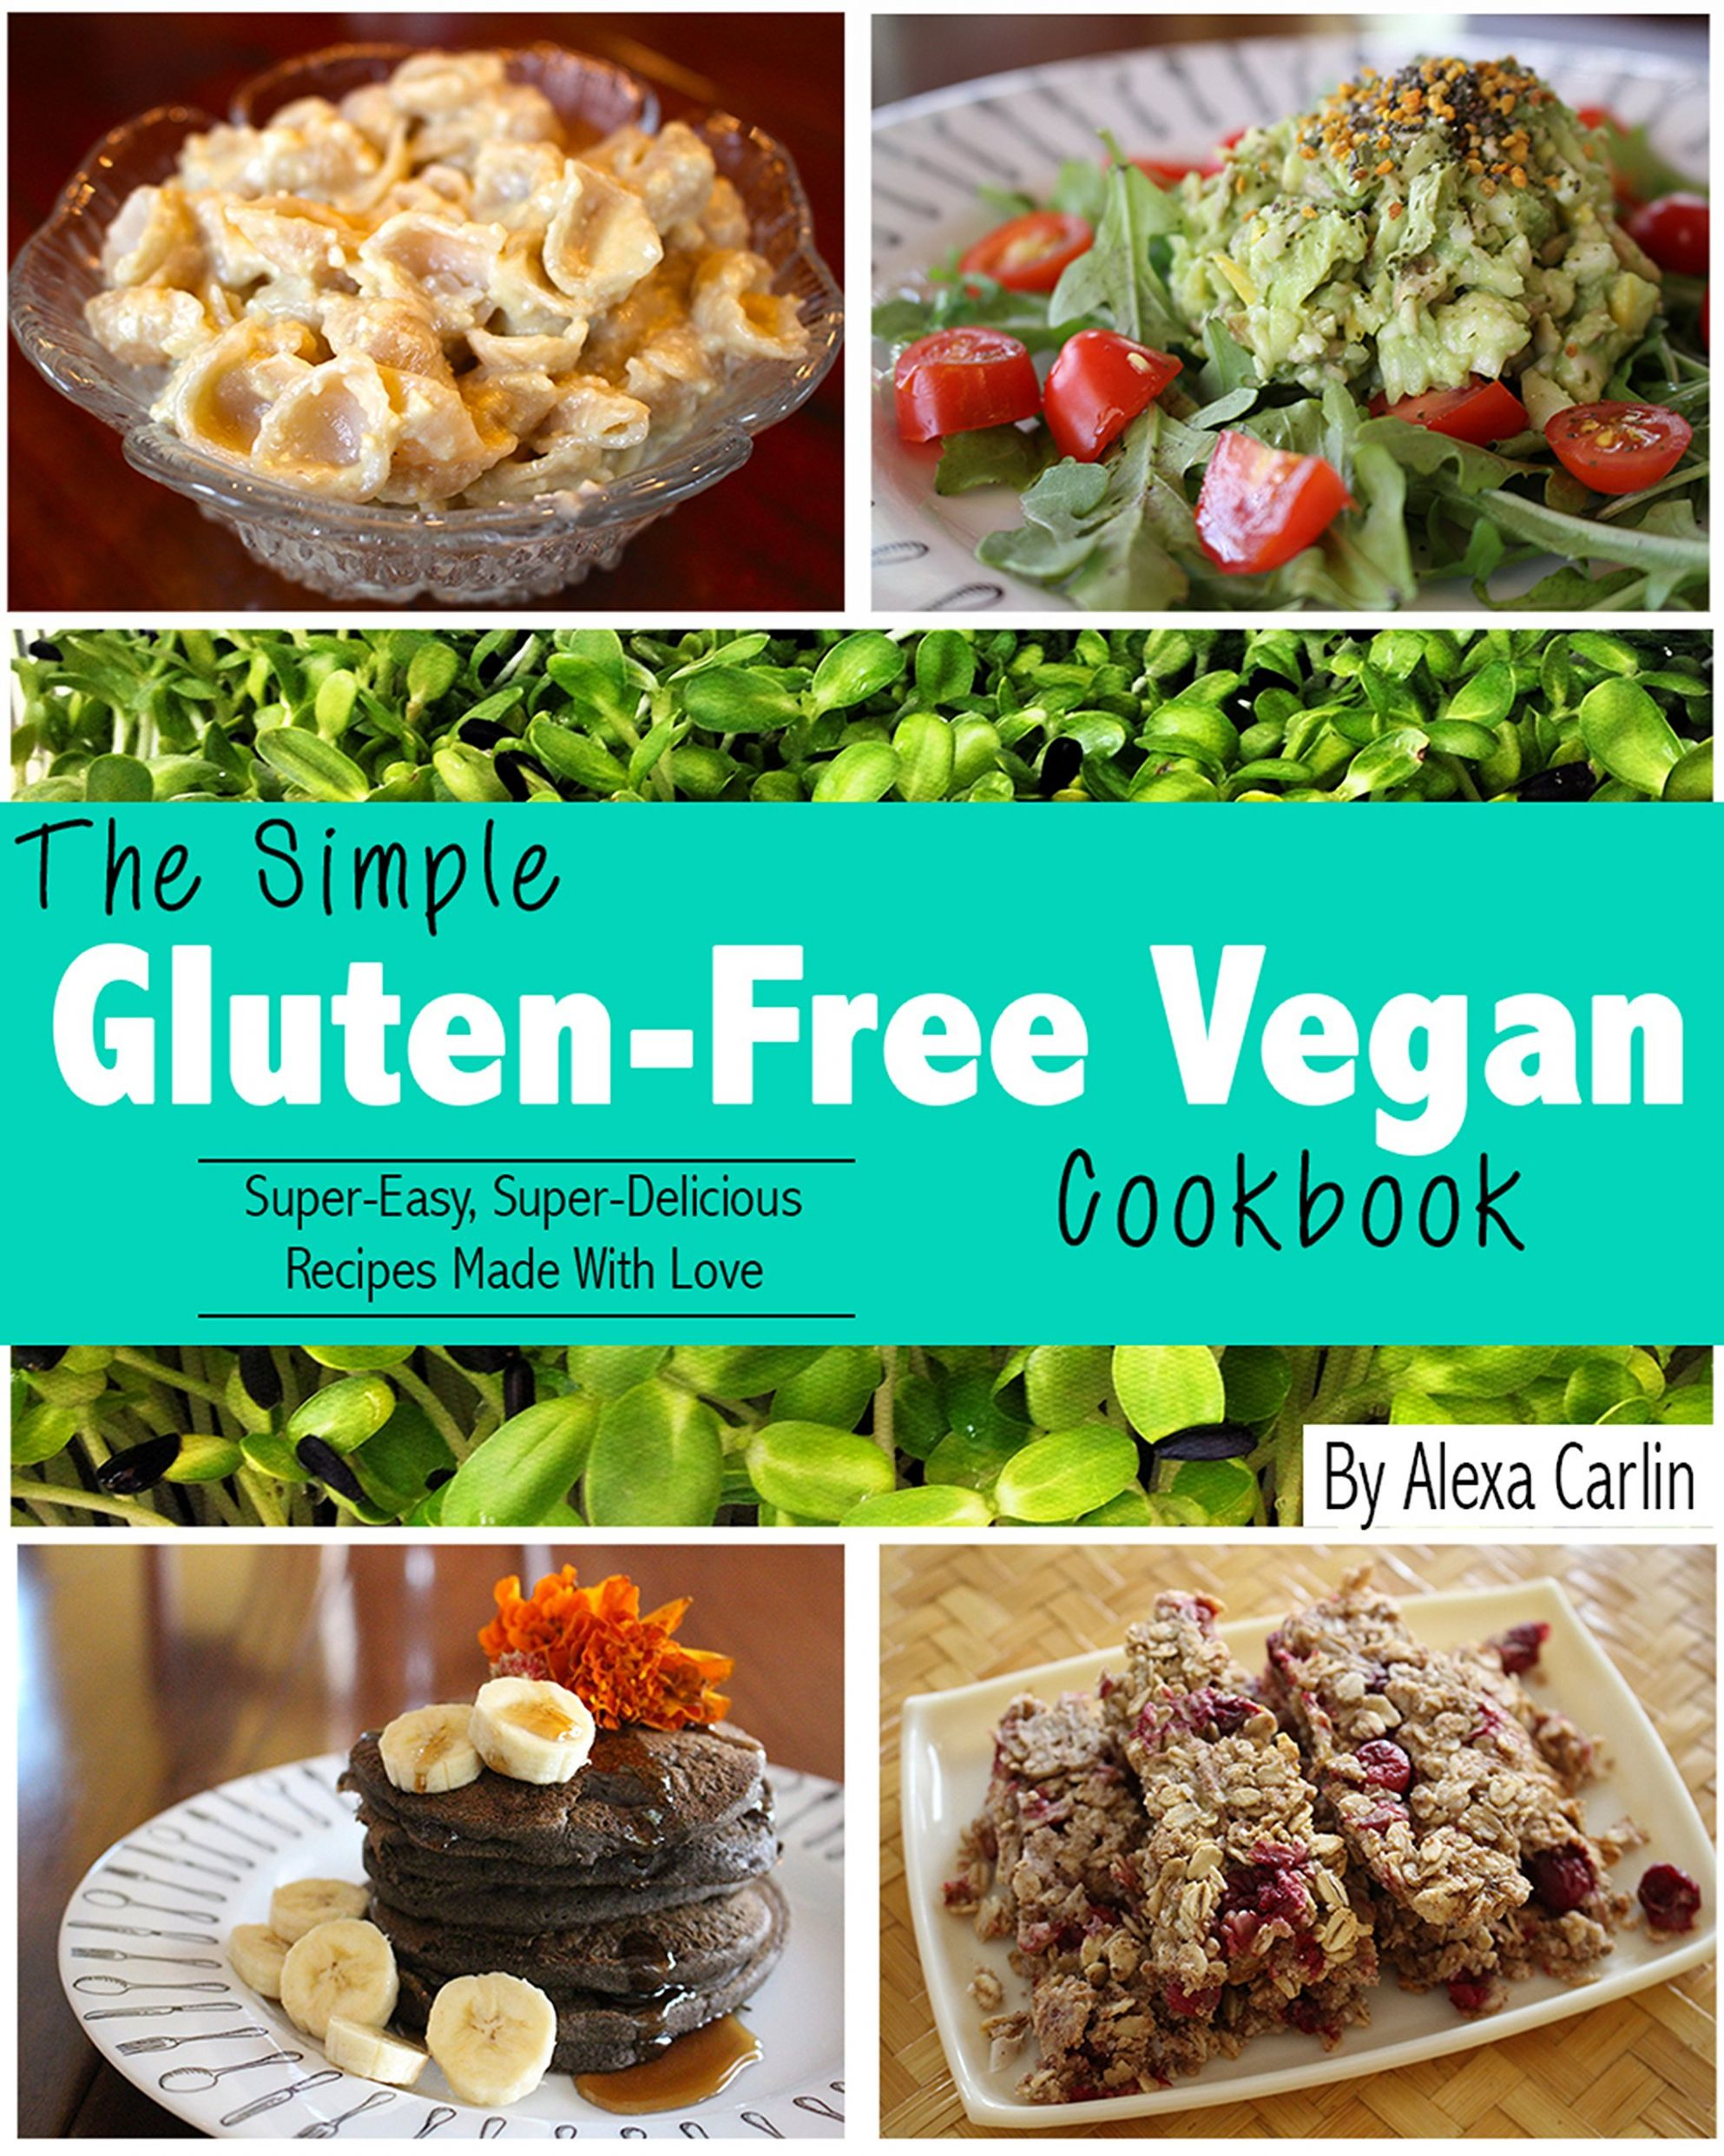 The Simple Gluten-Free Vegan Cookbook: Super-Easy, Super-Delicious ..